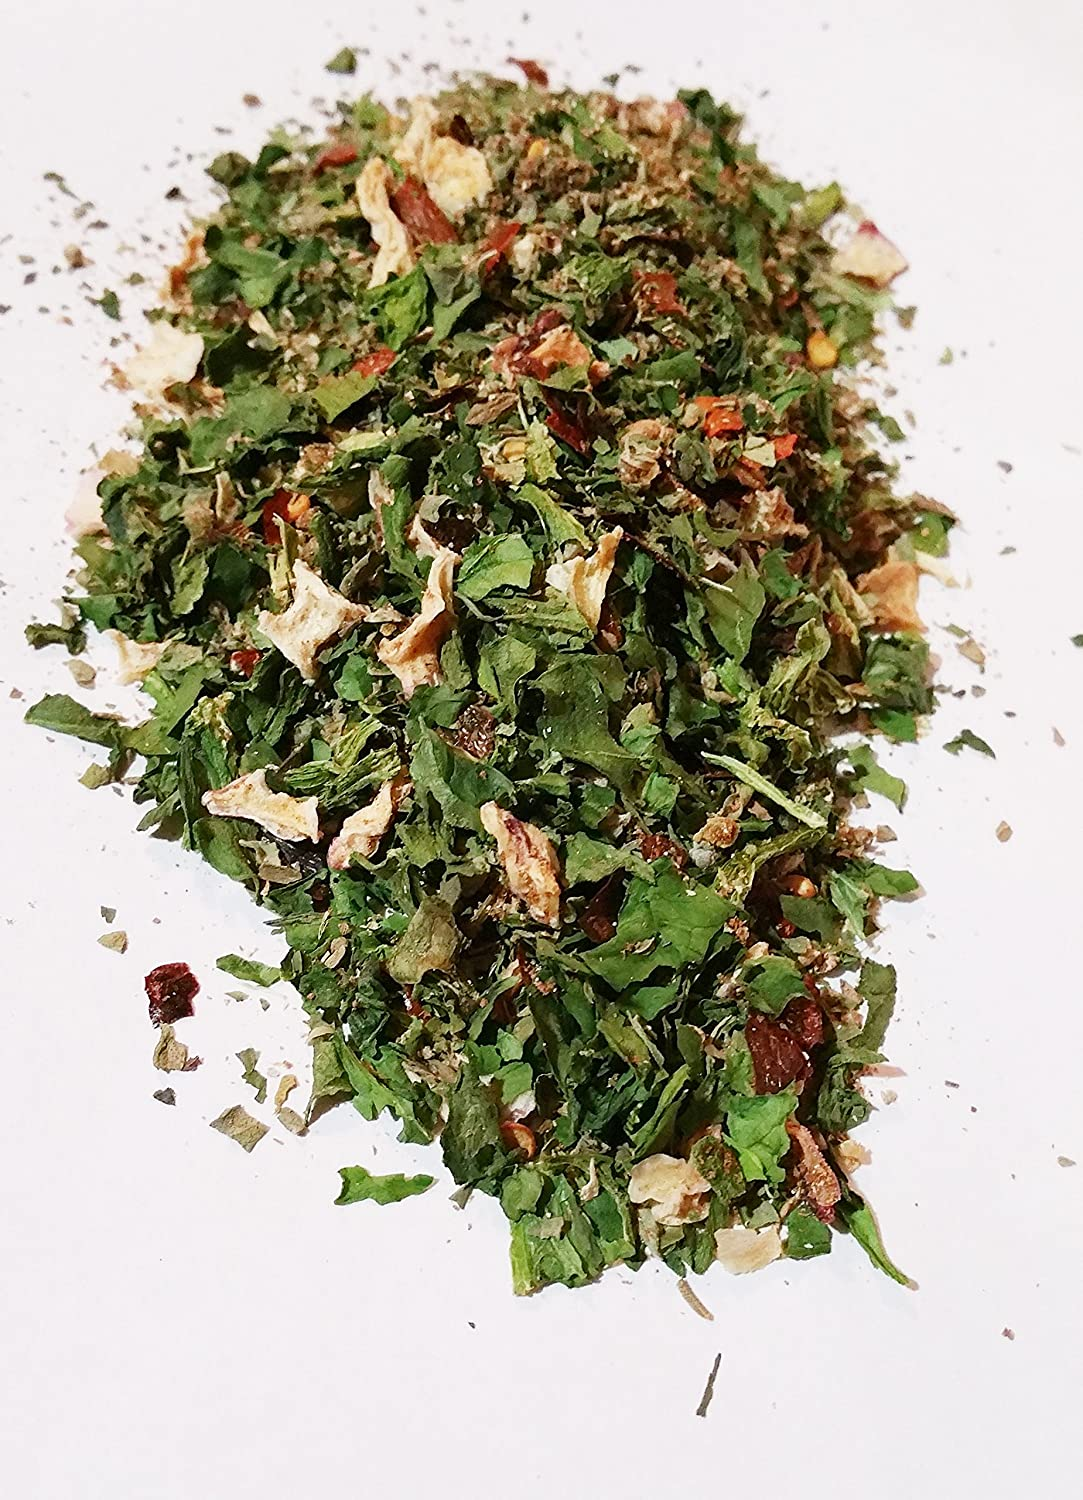 Amazon.com : Florentine Italian Herbs & Spice Mix Seasoning Fresh Ground Cuisine Blend : Grocery & Gourmet Food